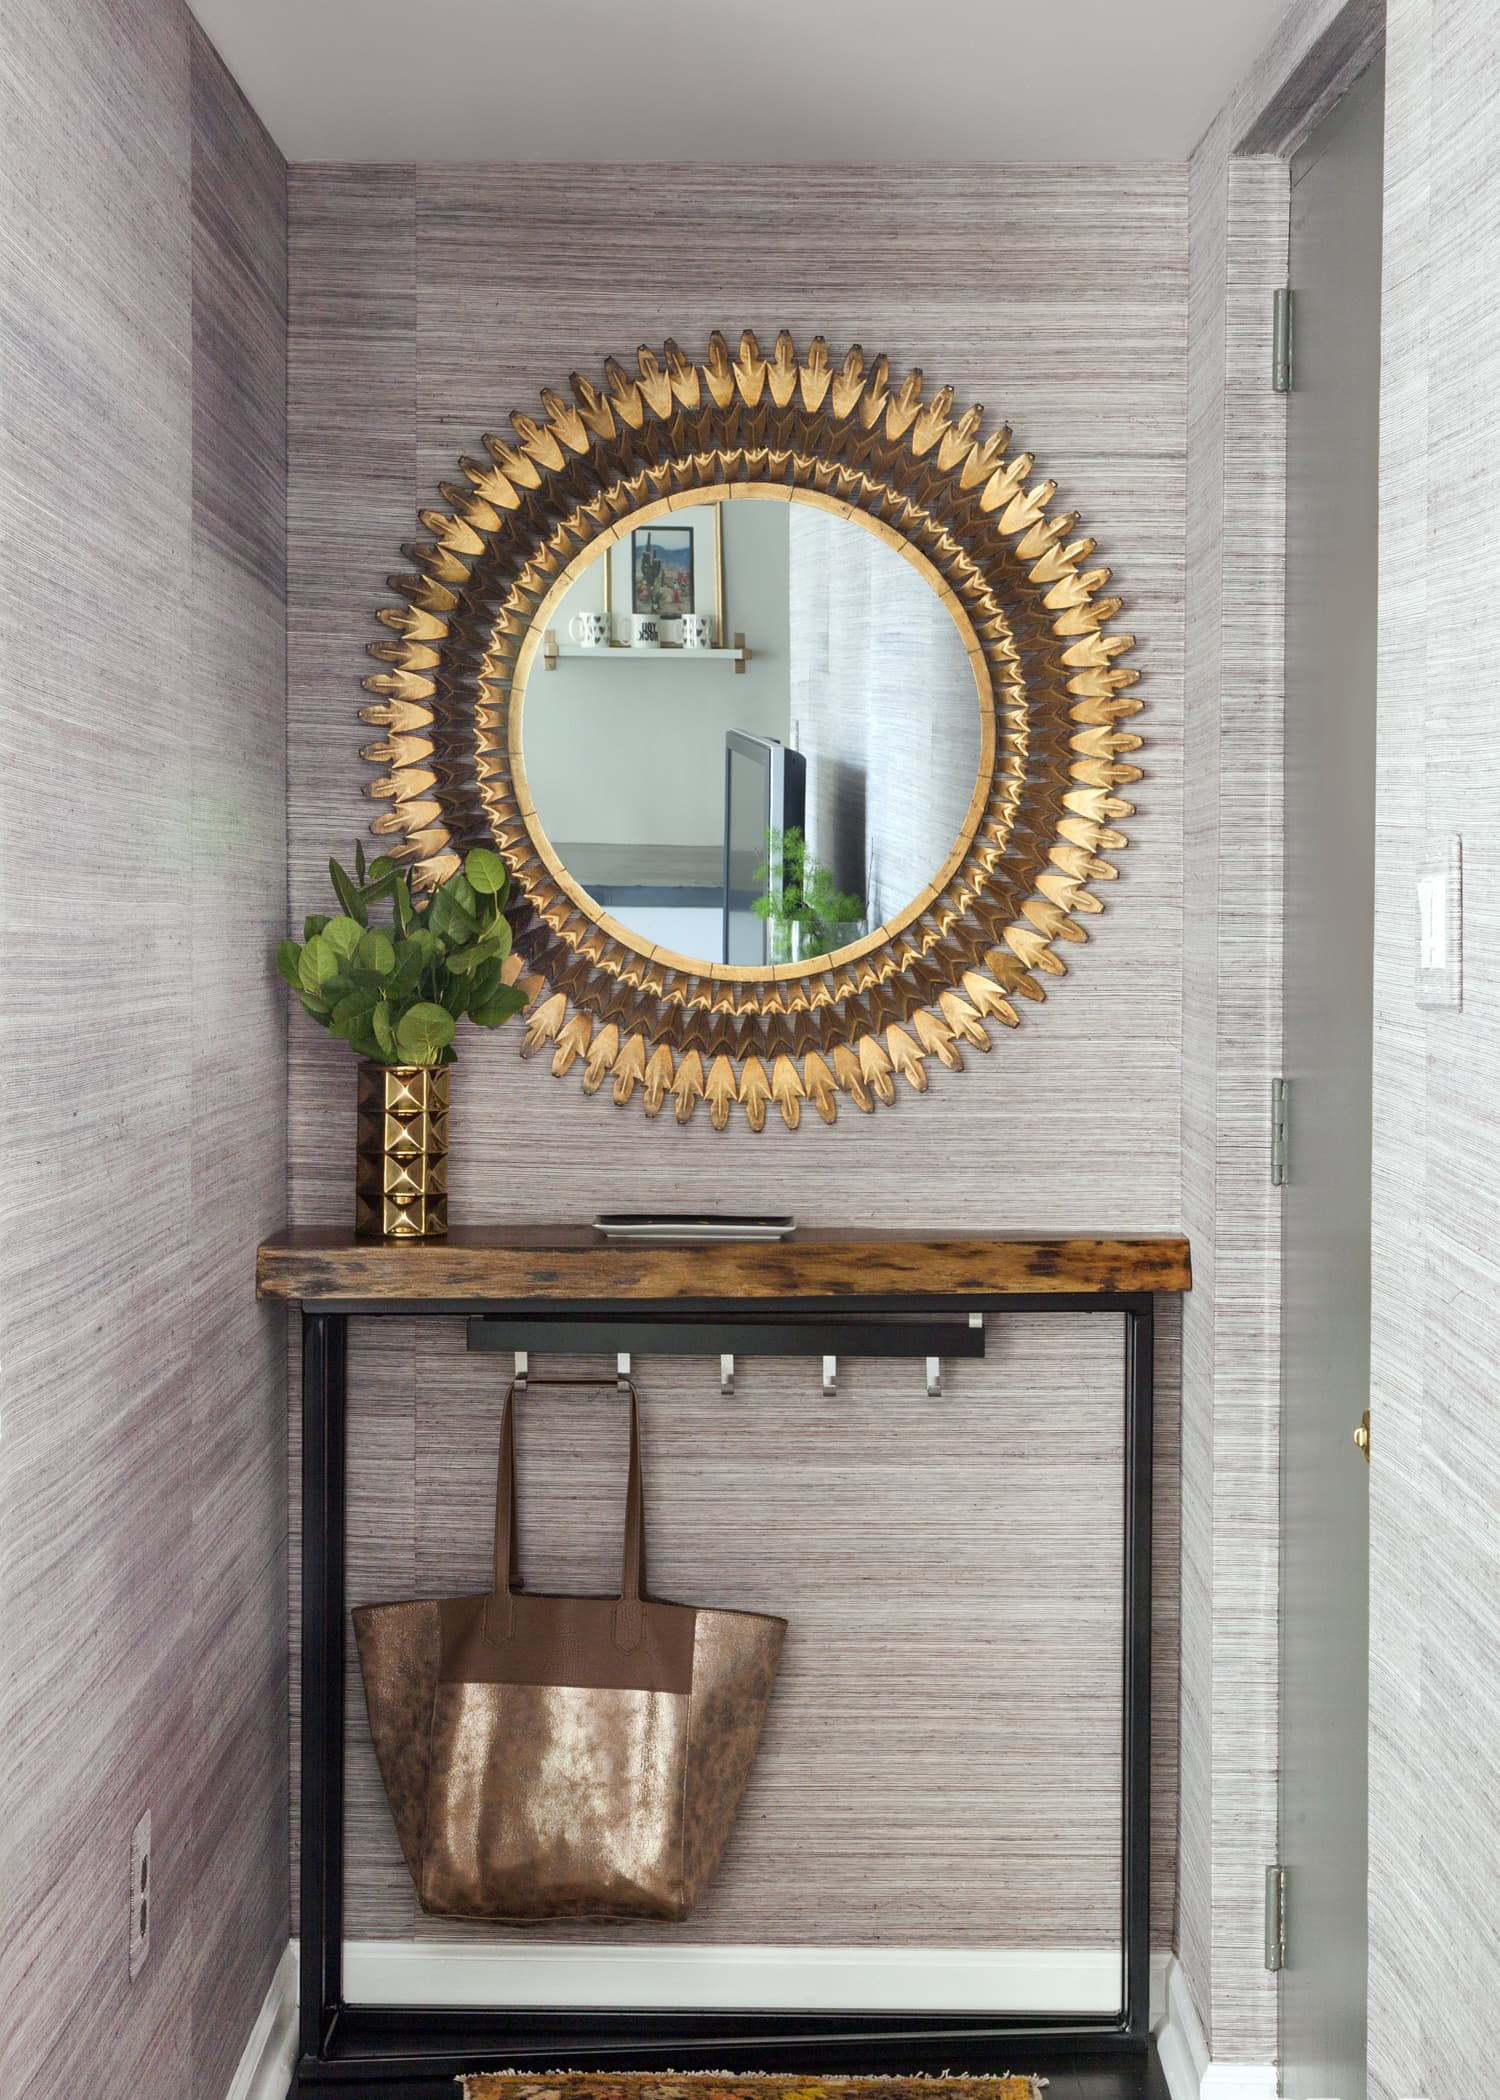 fab decor entryway ideas spaces for wall small inspirations top lighting decorating foyer